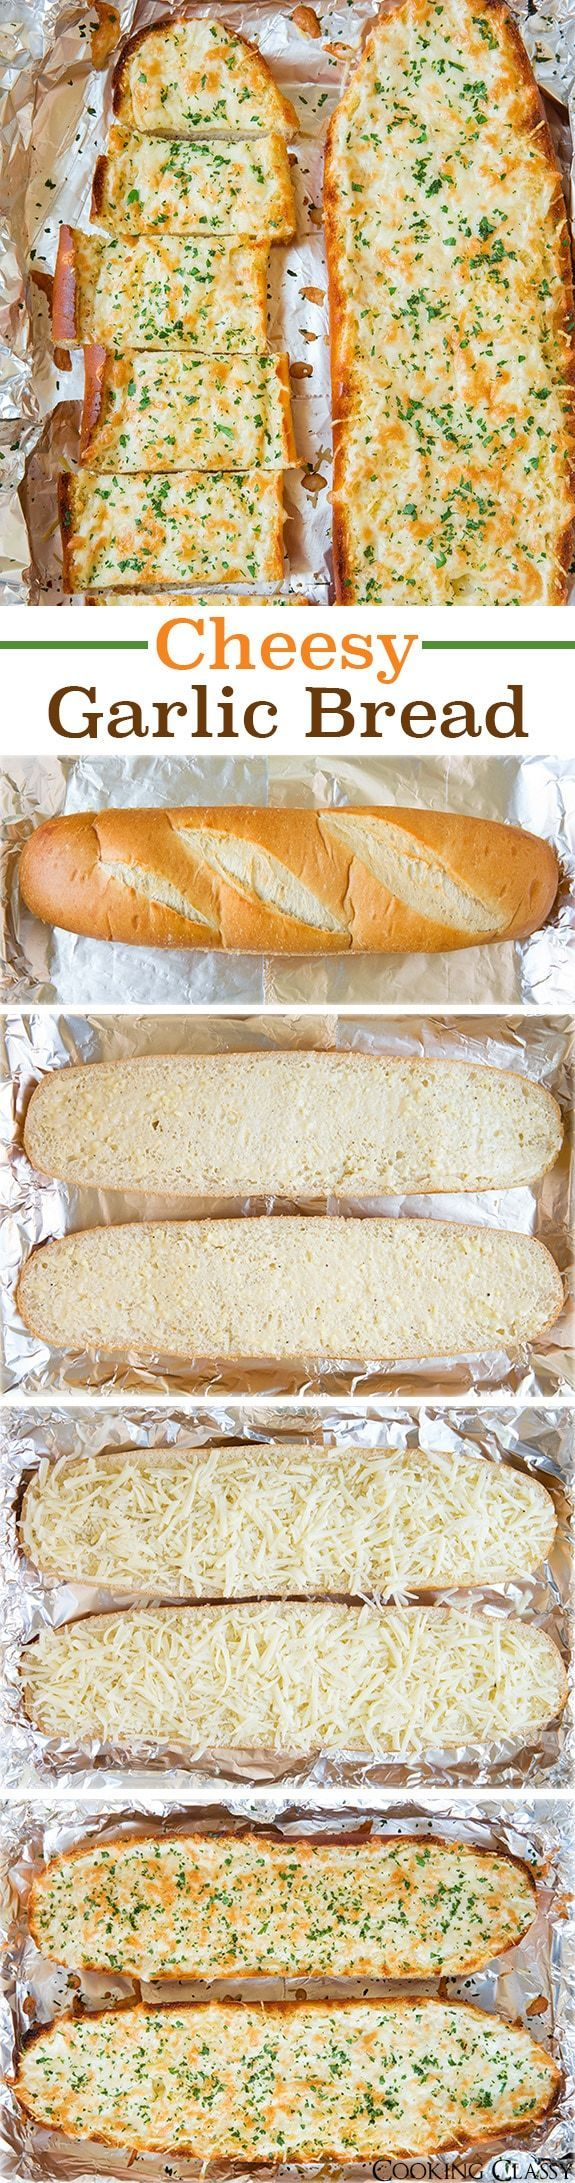 Garlic Breadcomes together in under 30 minutes and my family goes crazy for it! Serve alongside pasta, soup or salad as an easy, delicious side dish.#garlicbread